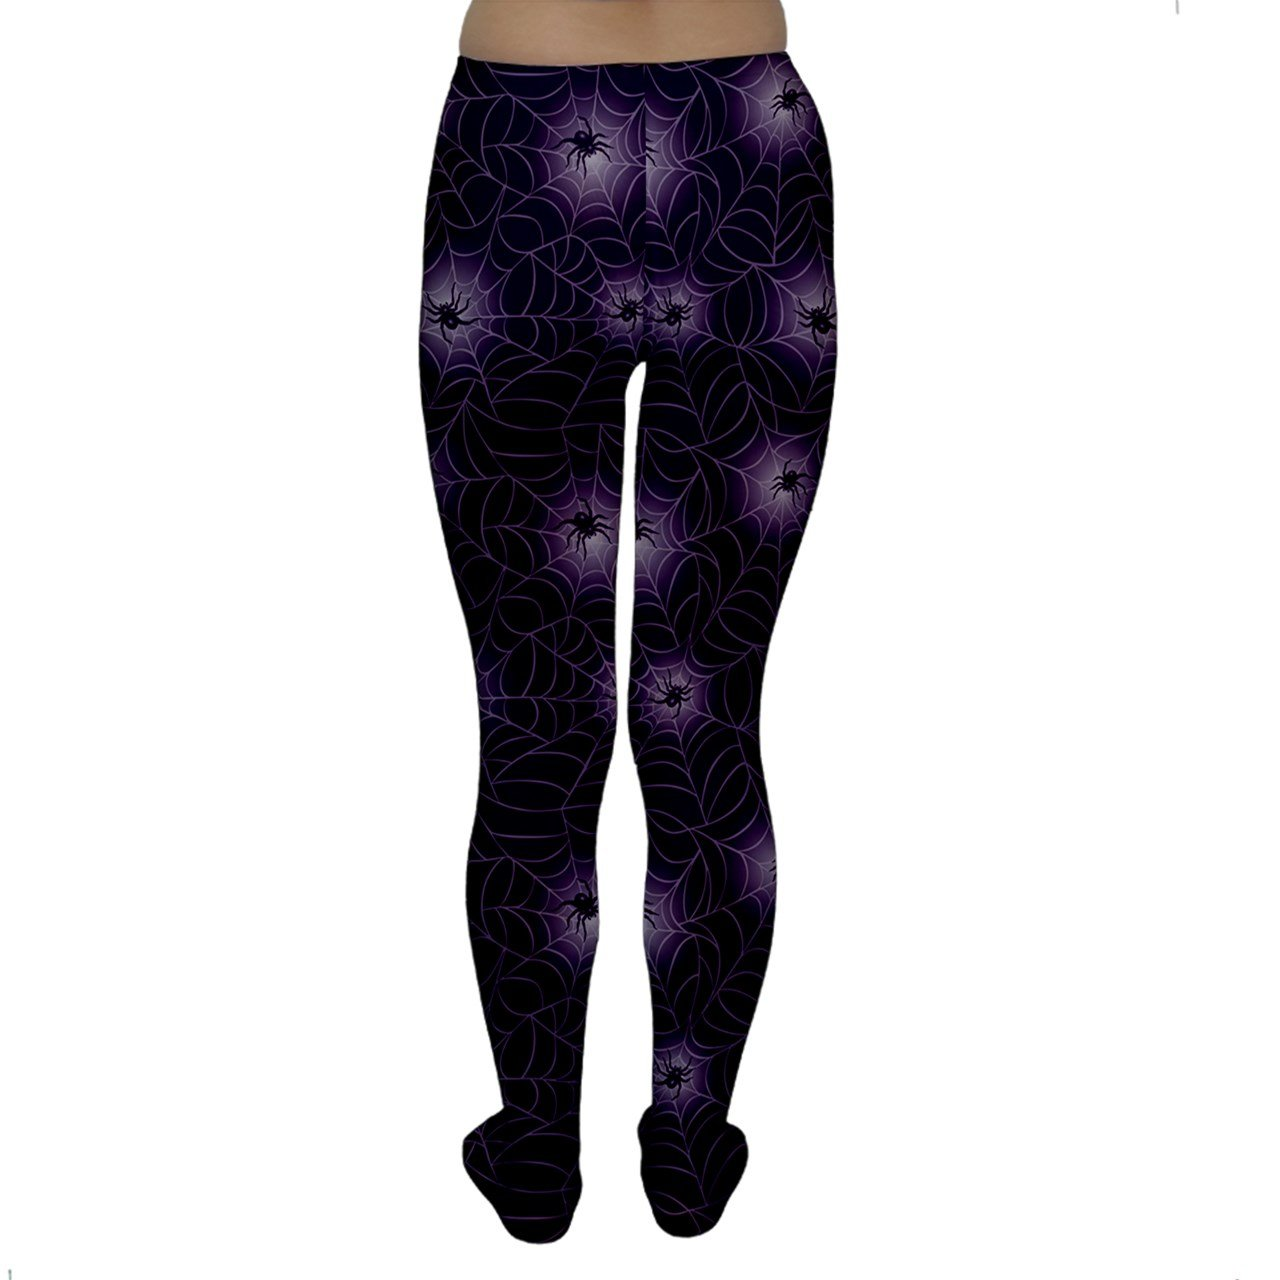 f77aab27e Purple Purple Spider Web Pattern Repeats Seamlessly Women s Tights at  Amazon Women s Clothing store